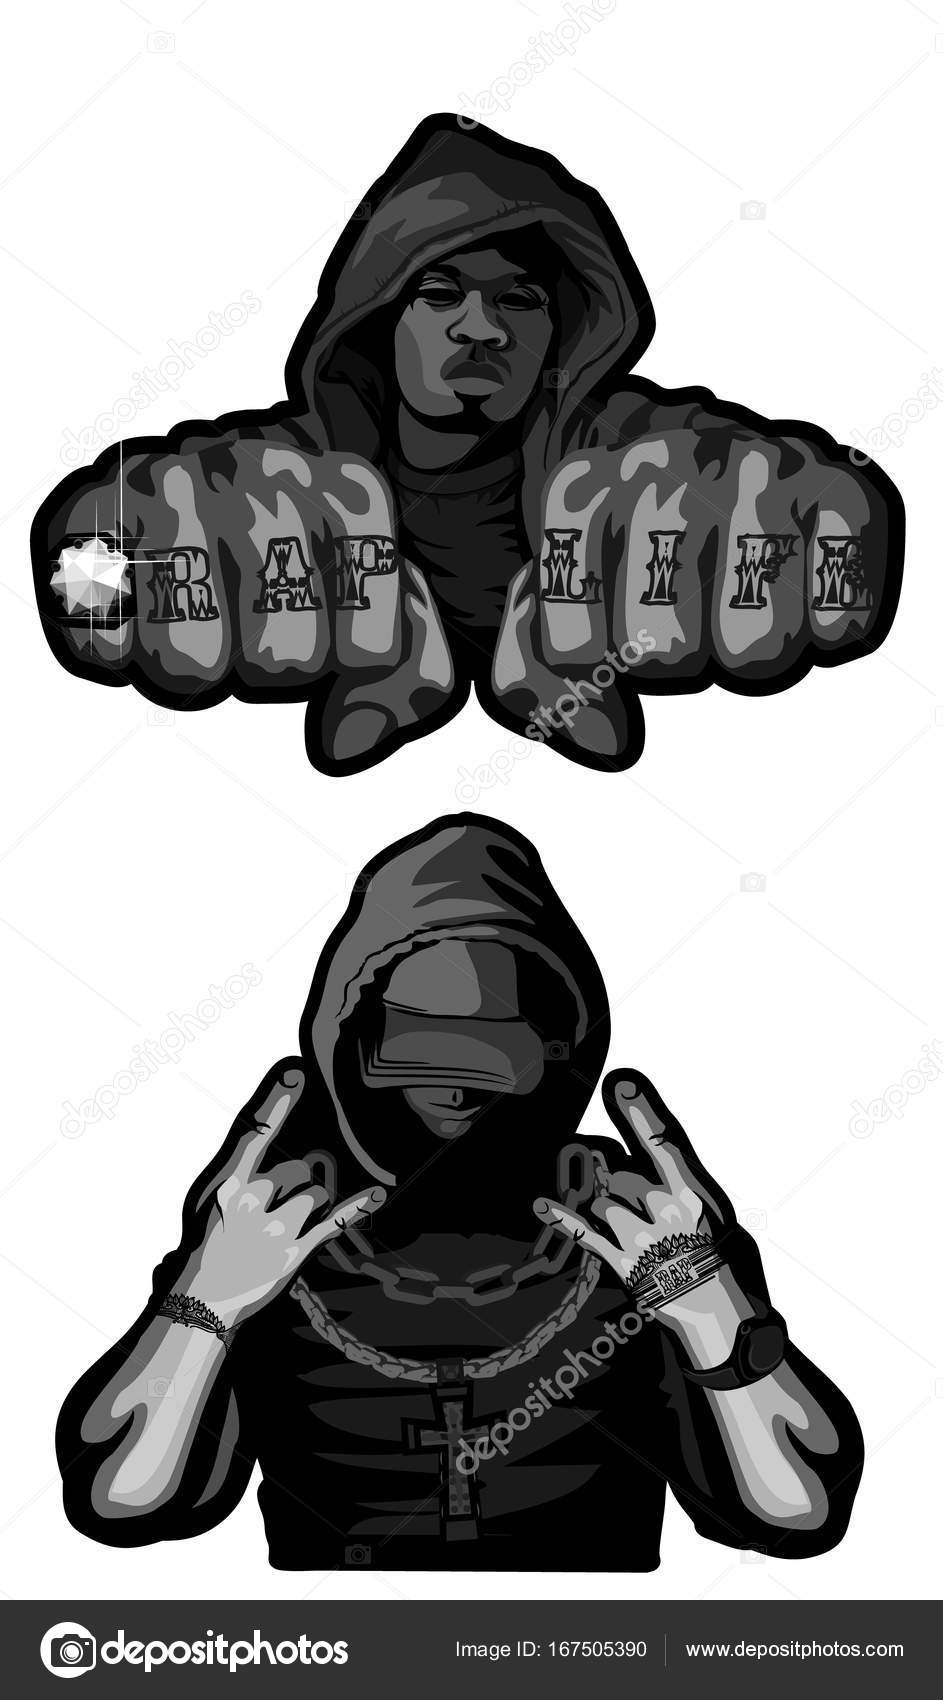 ᐈ Rappers Wallpaper Stock Vectors Royalty Free Black Rappers Illustrations Download On Depositphotos